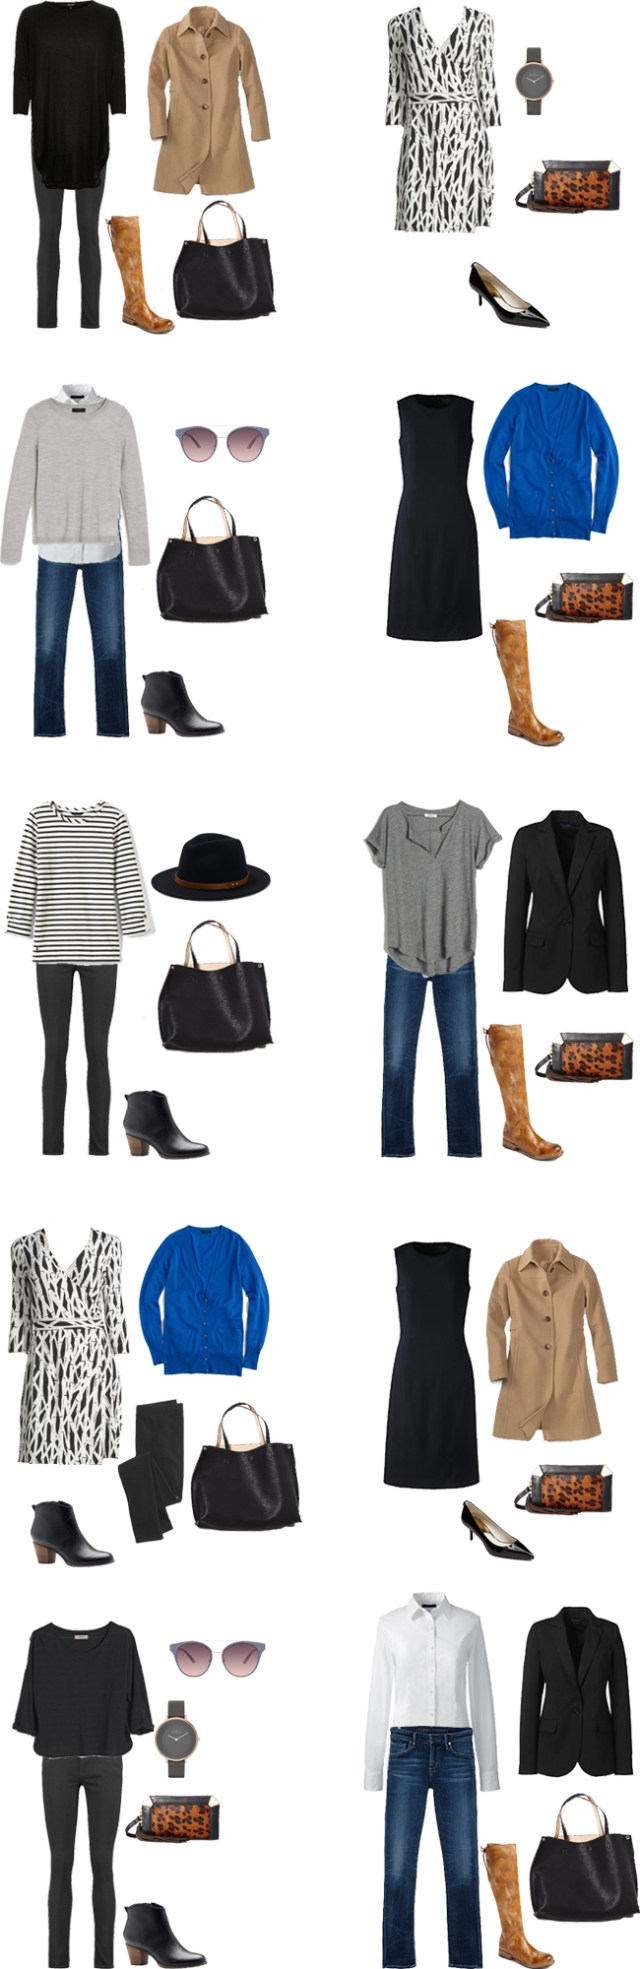 What to Wear in Vienna Outfits 1-10 #travellight #packinglight #traveltips #travel